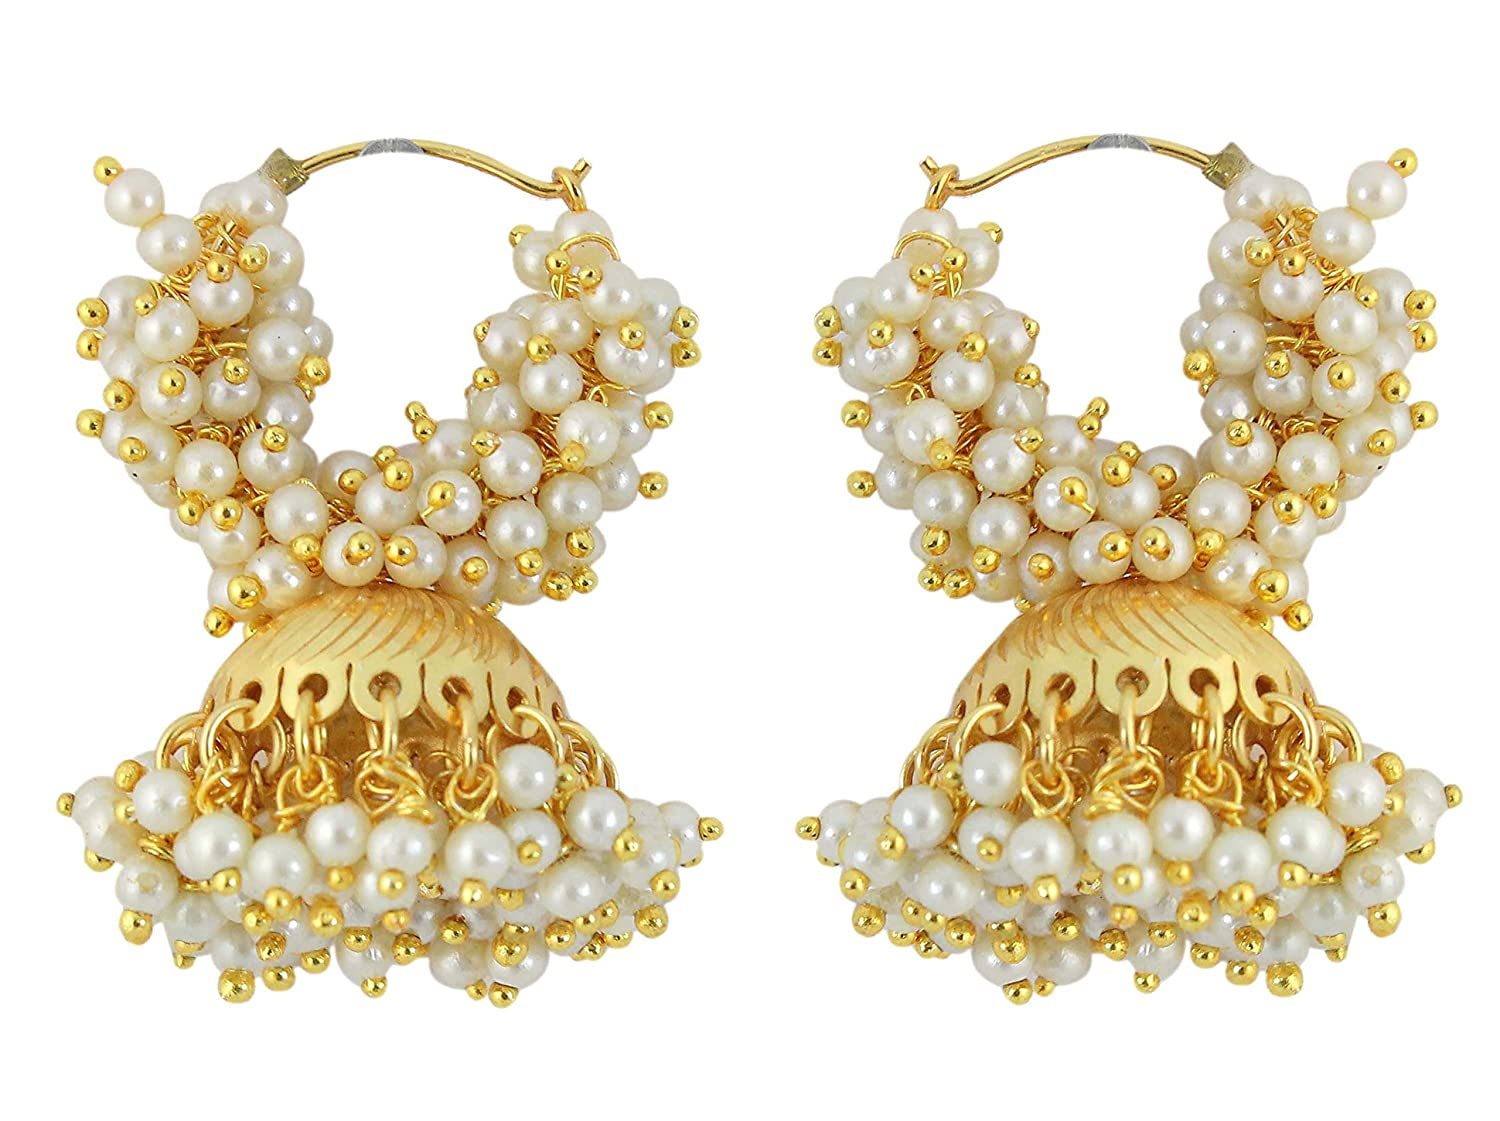 Muchmore Brass Jhumki Earrings For Girls And Women (White): MUCH ...